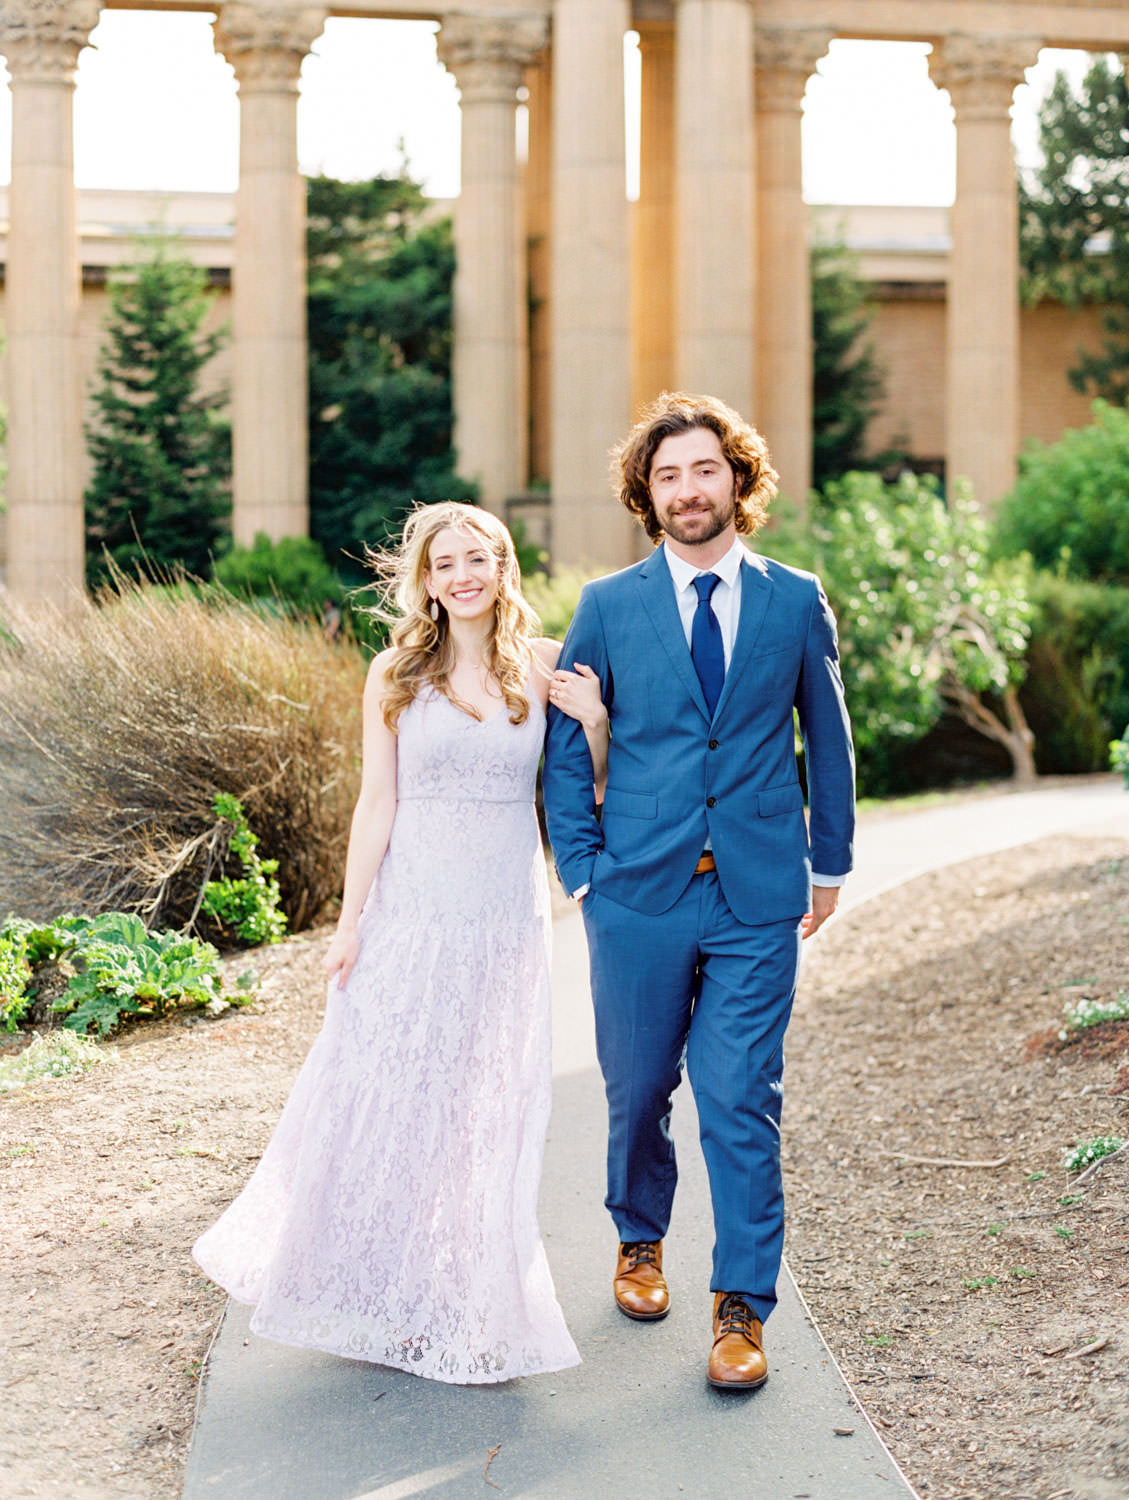 Blue suit and lavender lace dress, Palace of Fine Arts Engagement Session in San Francisco captured on film by Cavin Elizabeth